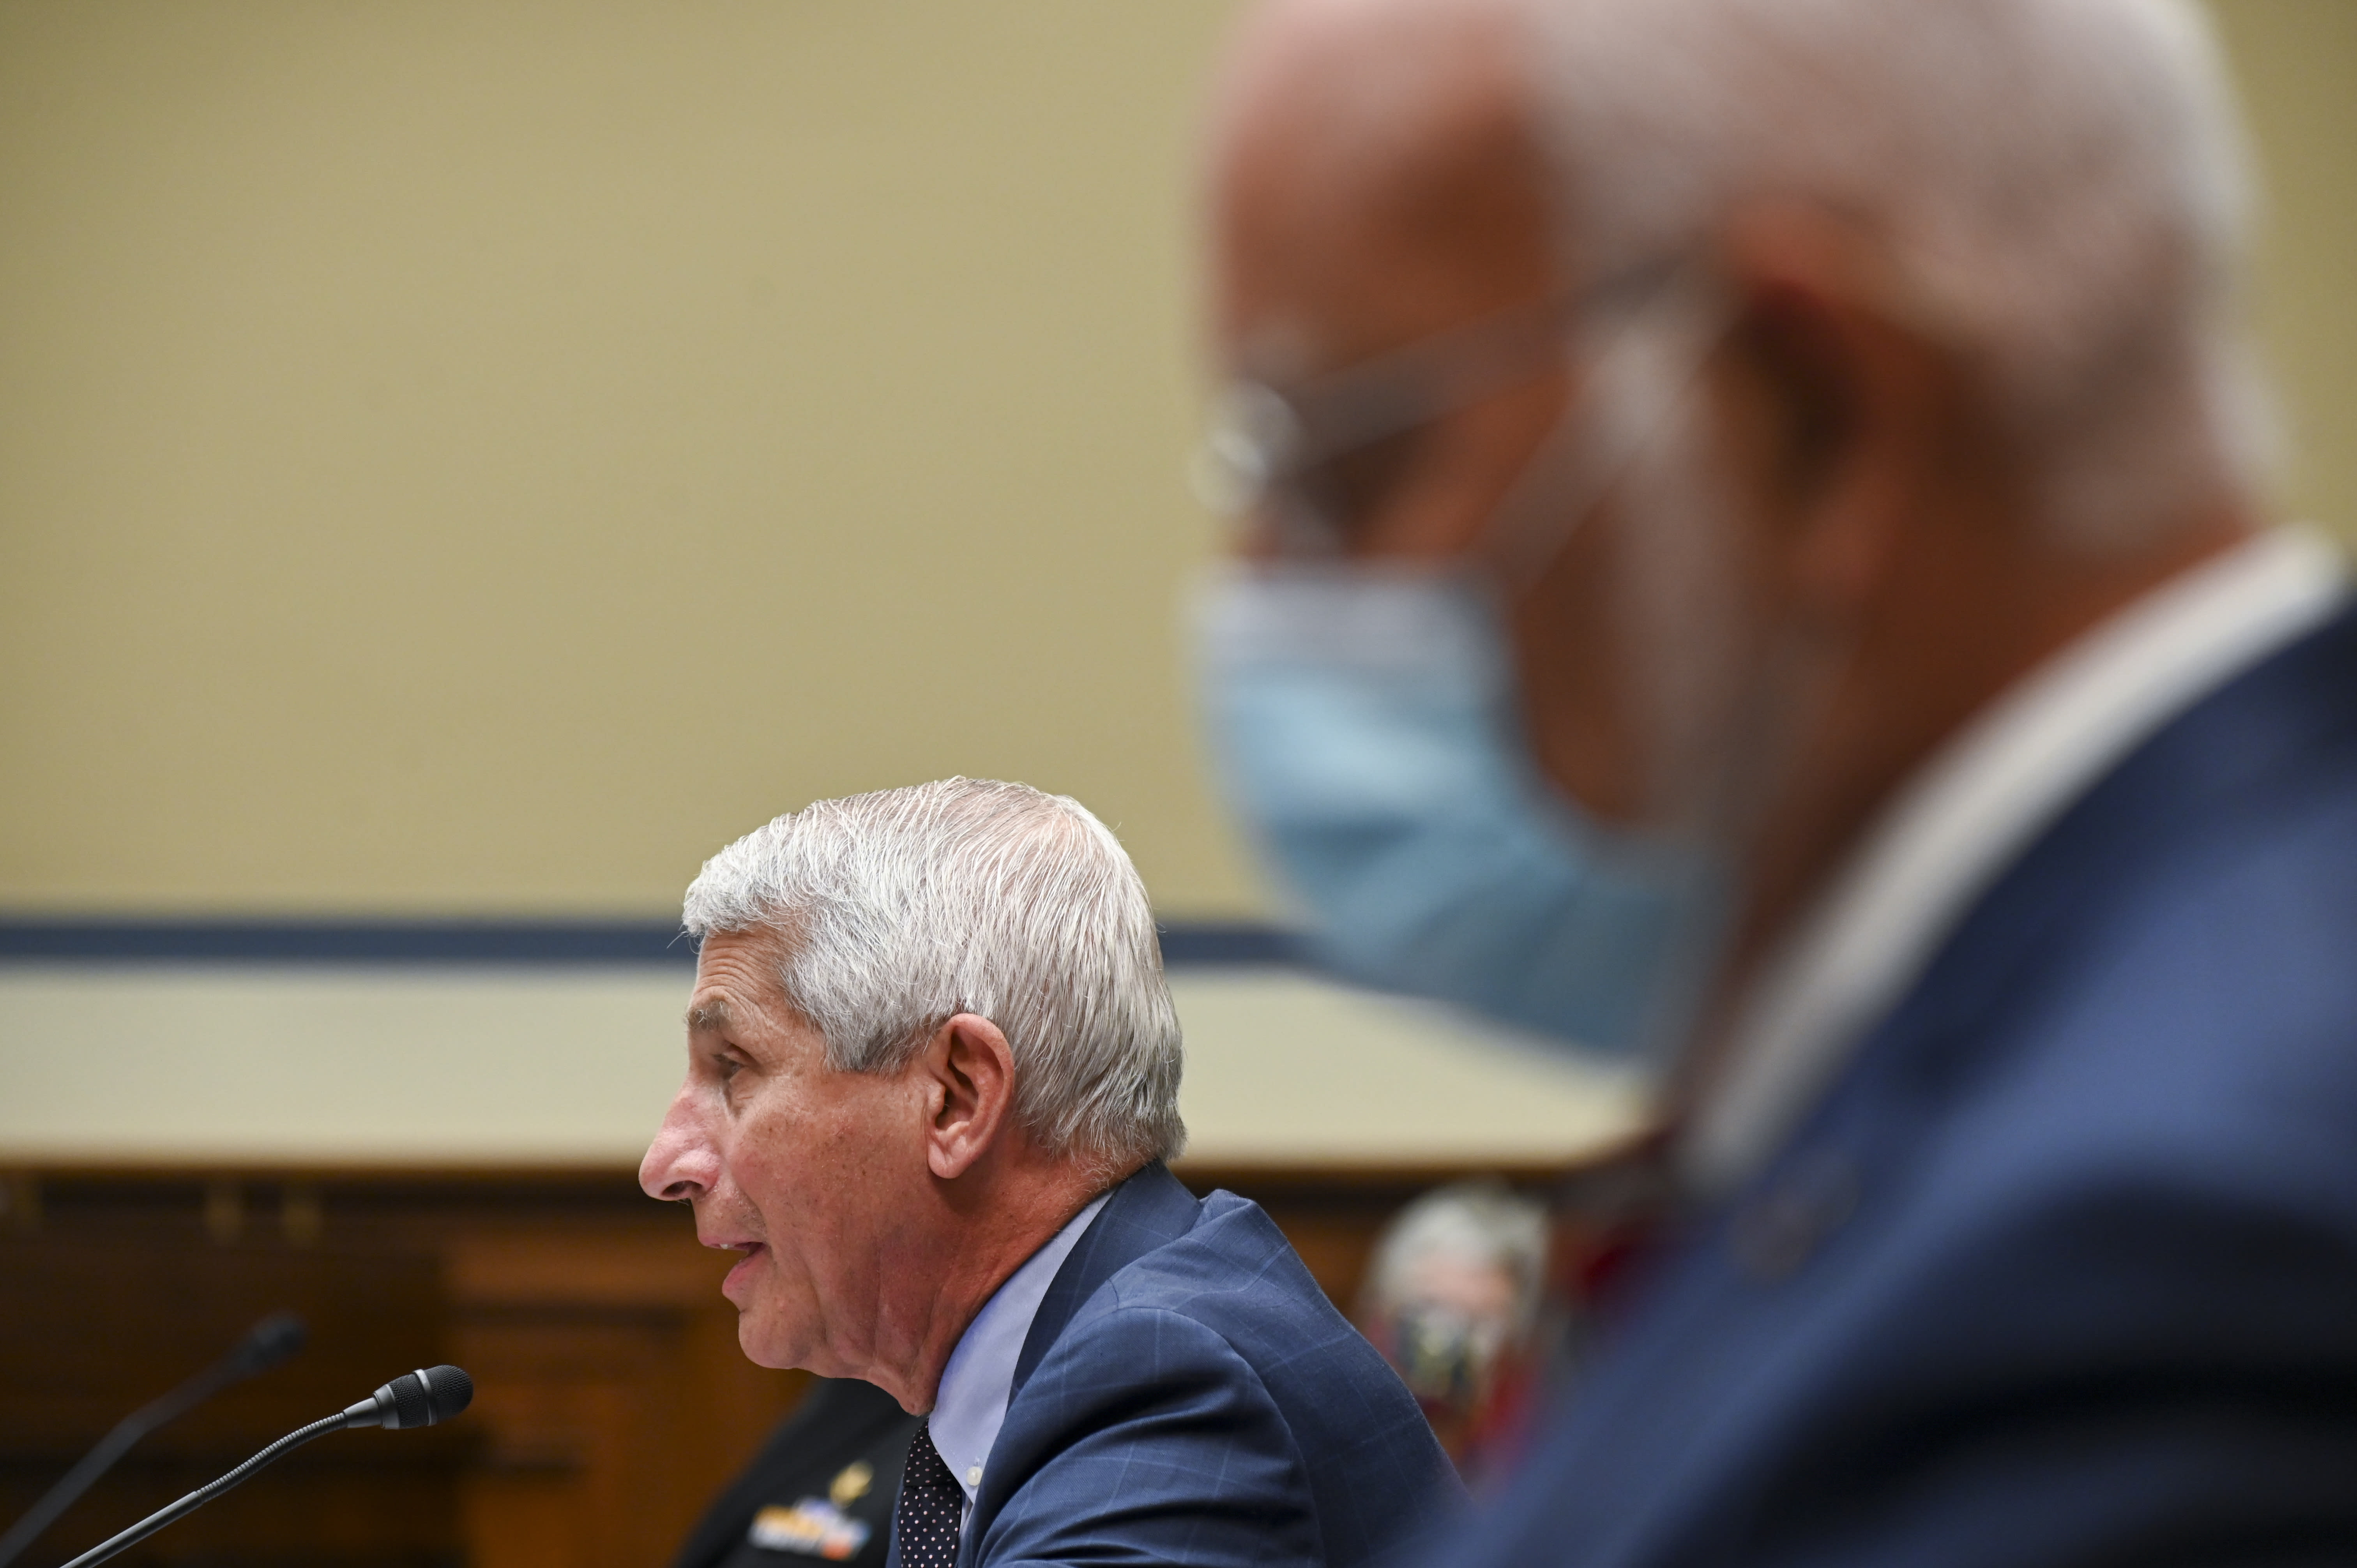 Dr. Anthony Fauci, director of the National Institute of Allergy and Infectious Diseases, speaks as Robert Redfield, director of the Centers for Disease Control and Prevention (CDC), right, listens during a House Select Subcommittee hearing on the Coronavirus, Friday, July 31, 2020 on Capitol Hill in Washington. (Erin Scott/Pool via AP)